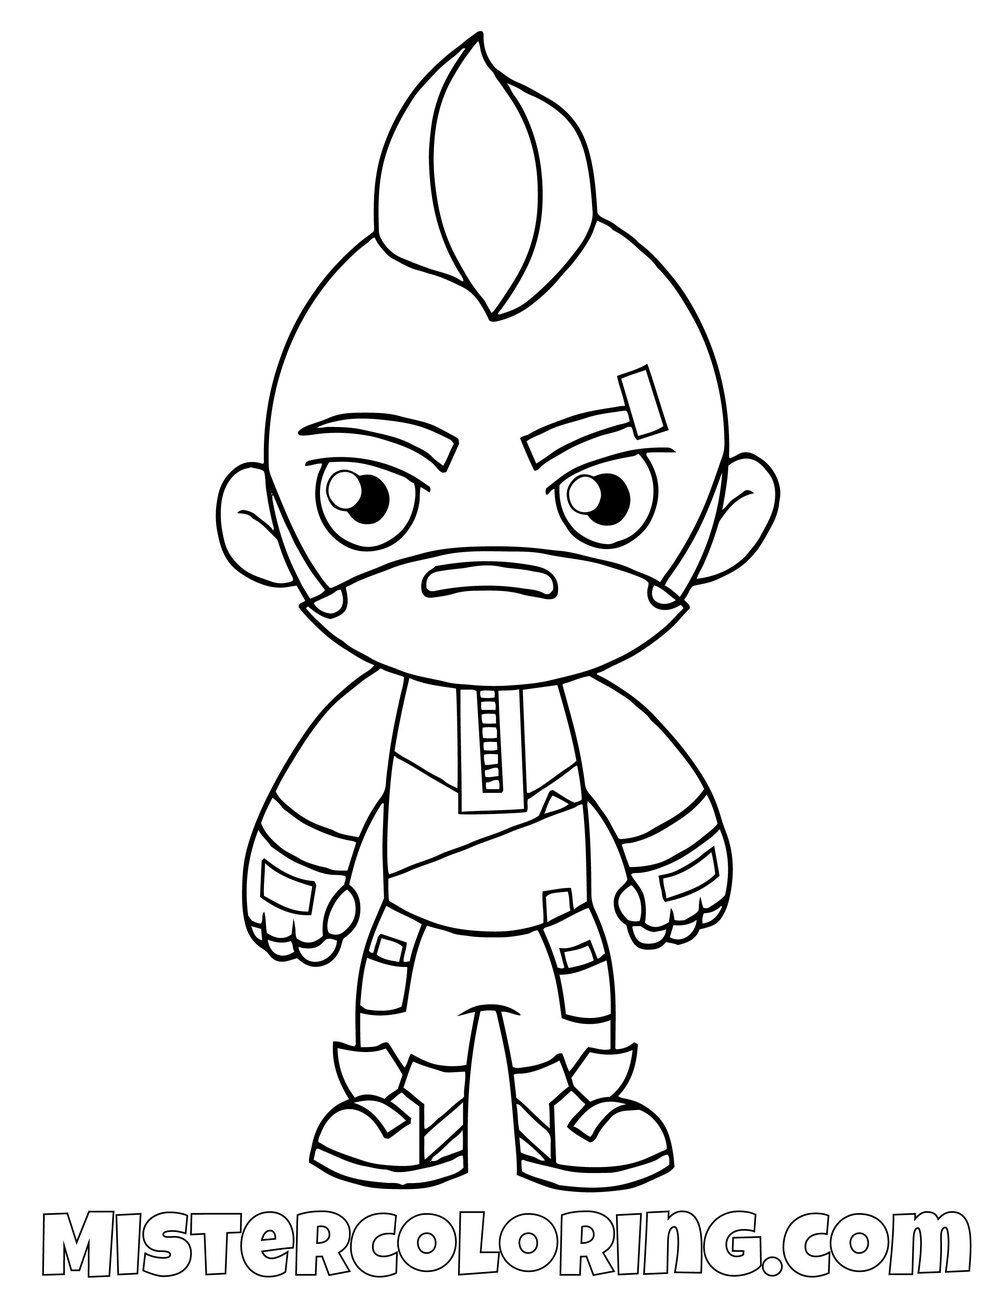 - Free Drift Chibi Fortnite Skin Coloring Page For Kids (With Images